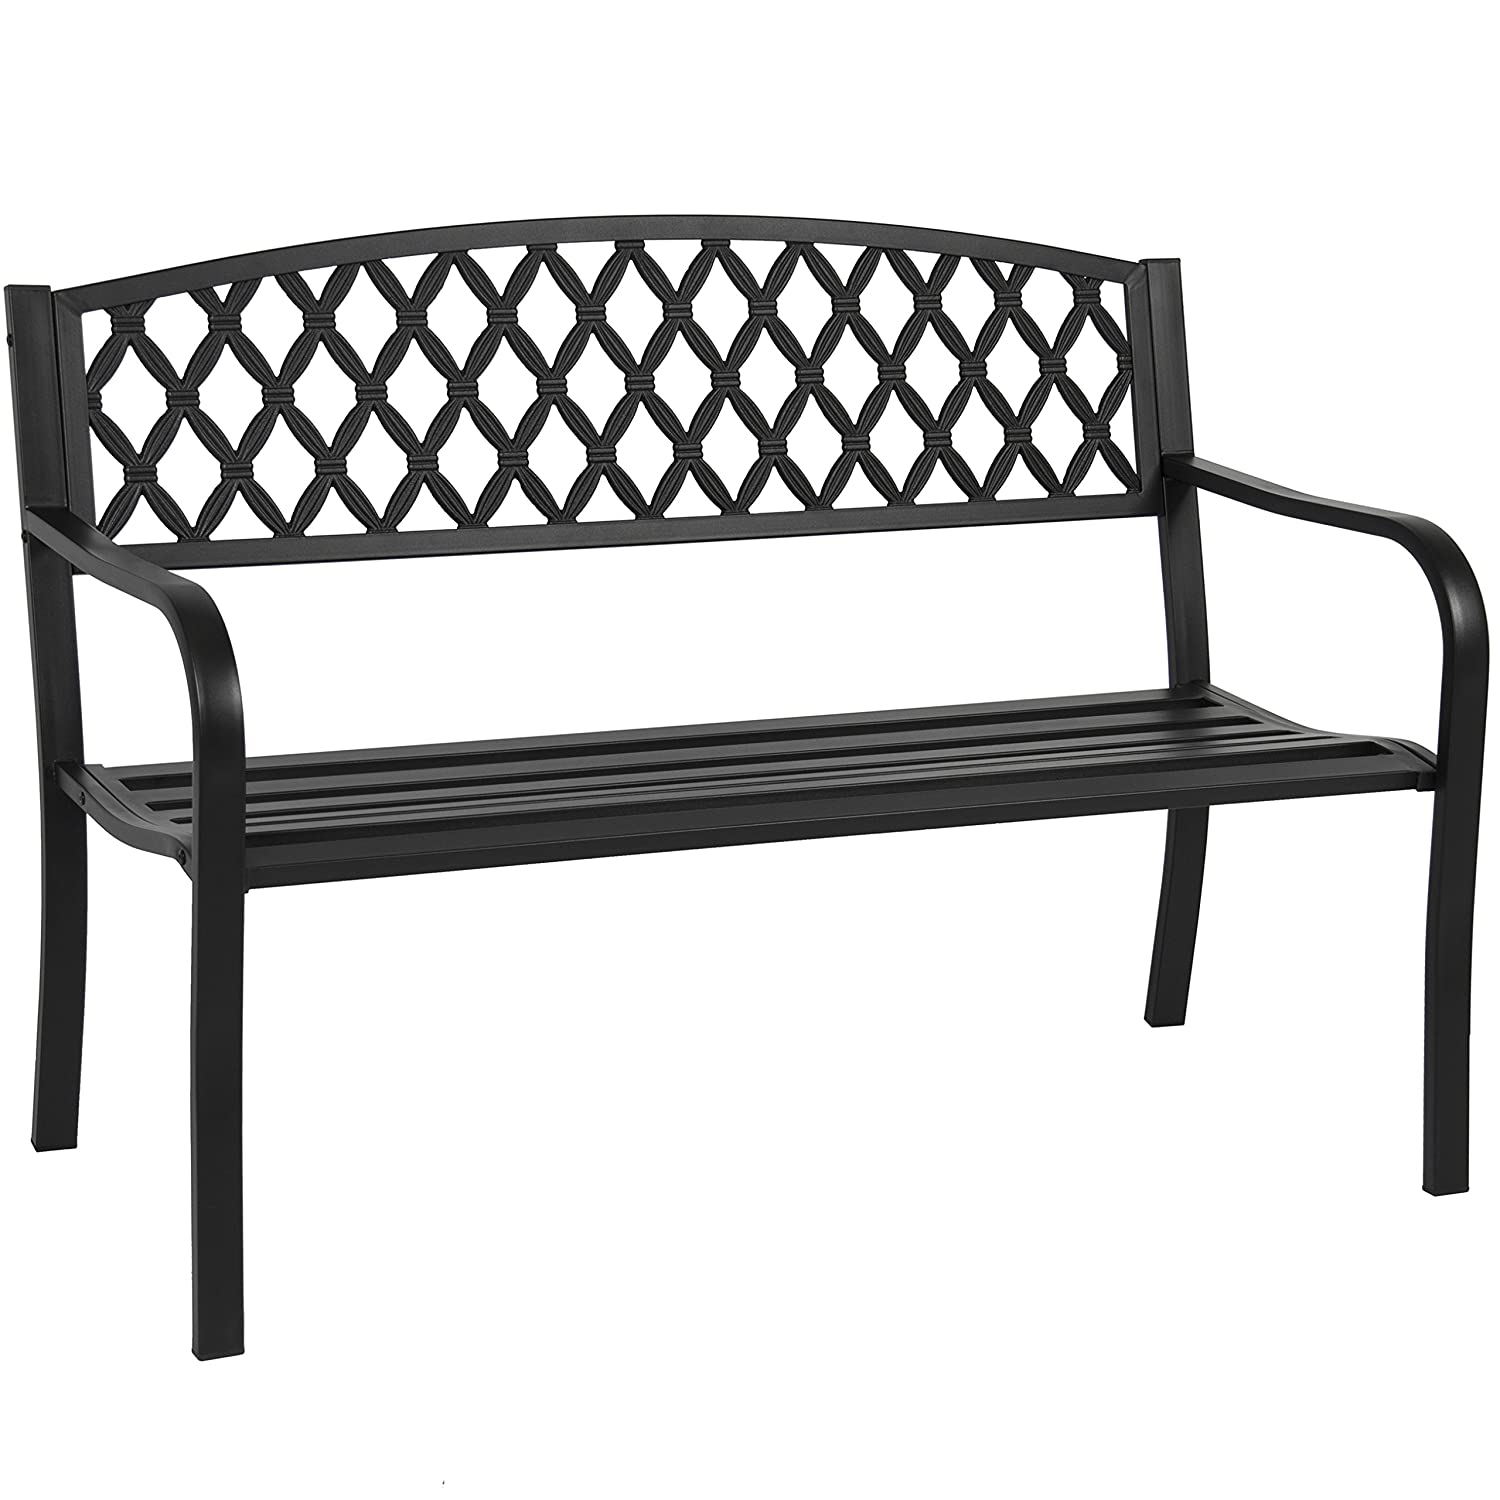 Amazoncom Benches Patio Seating Patio Lawn Garden